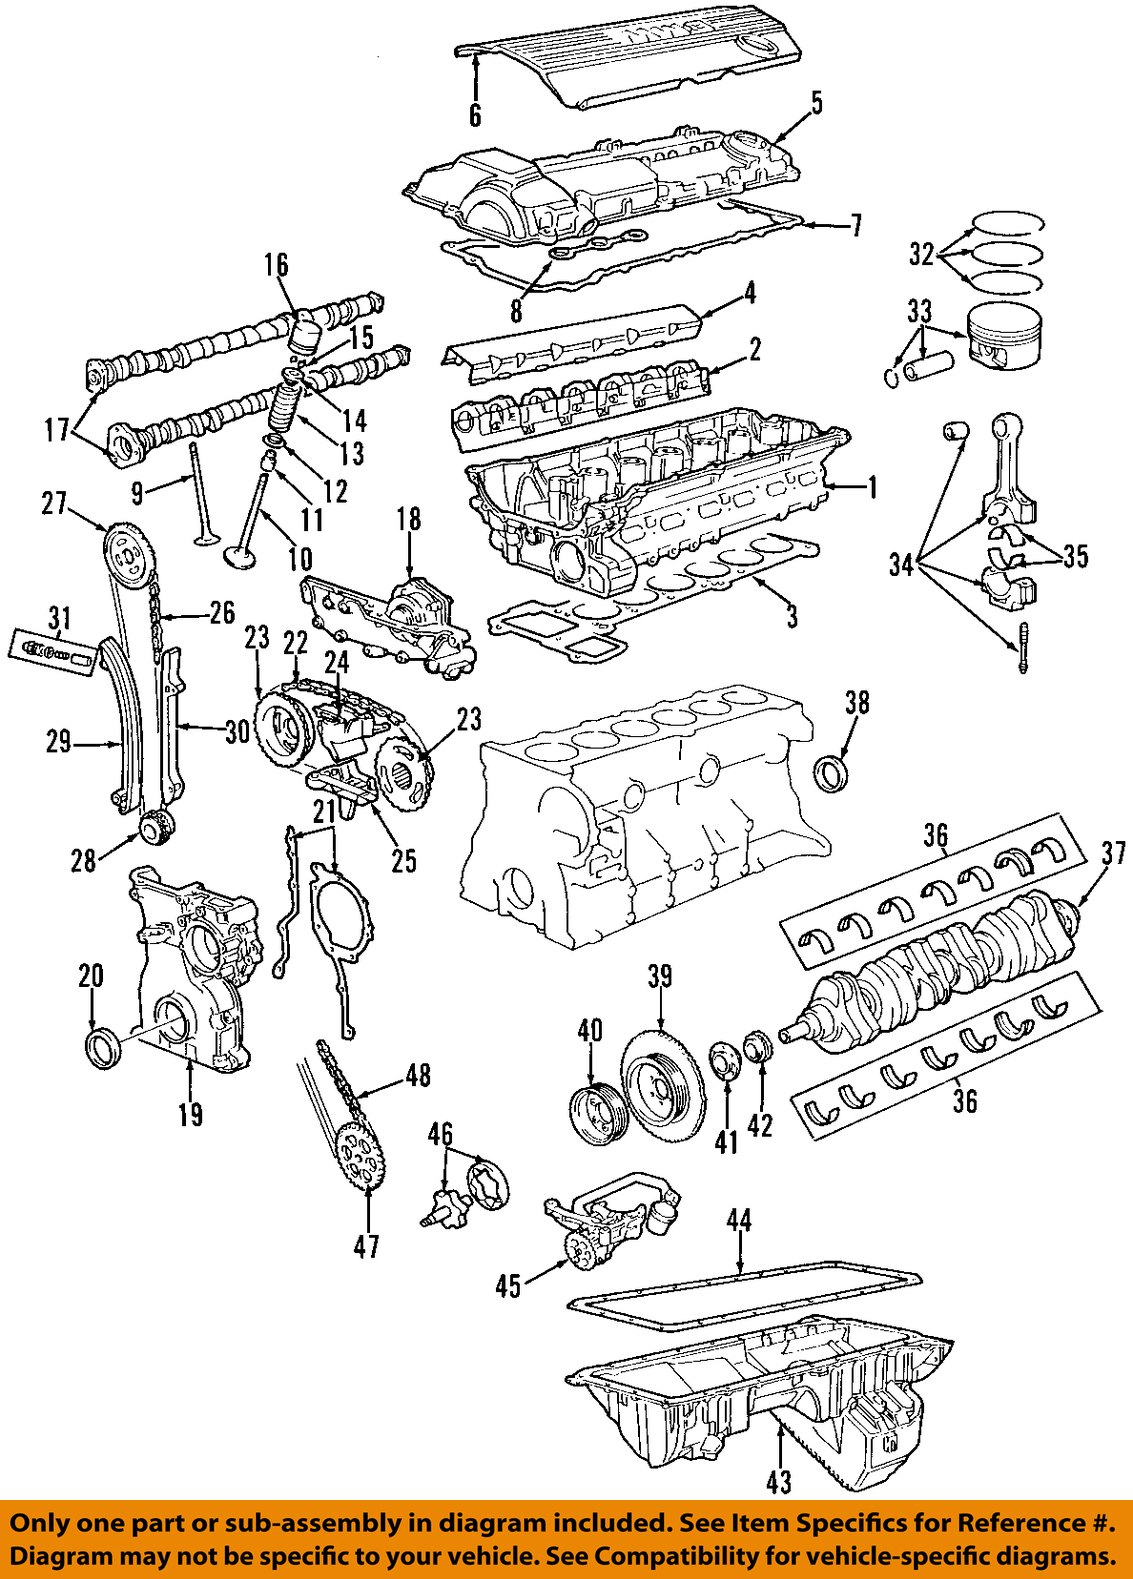 1995 Bmw 325i Wiring Diagram Starting Know About Eagle Talon Engine E46 330xi 1984 318i Transmission Fuel Pump